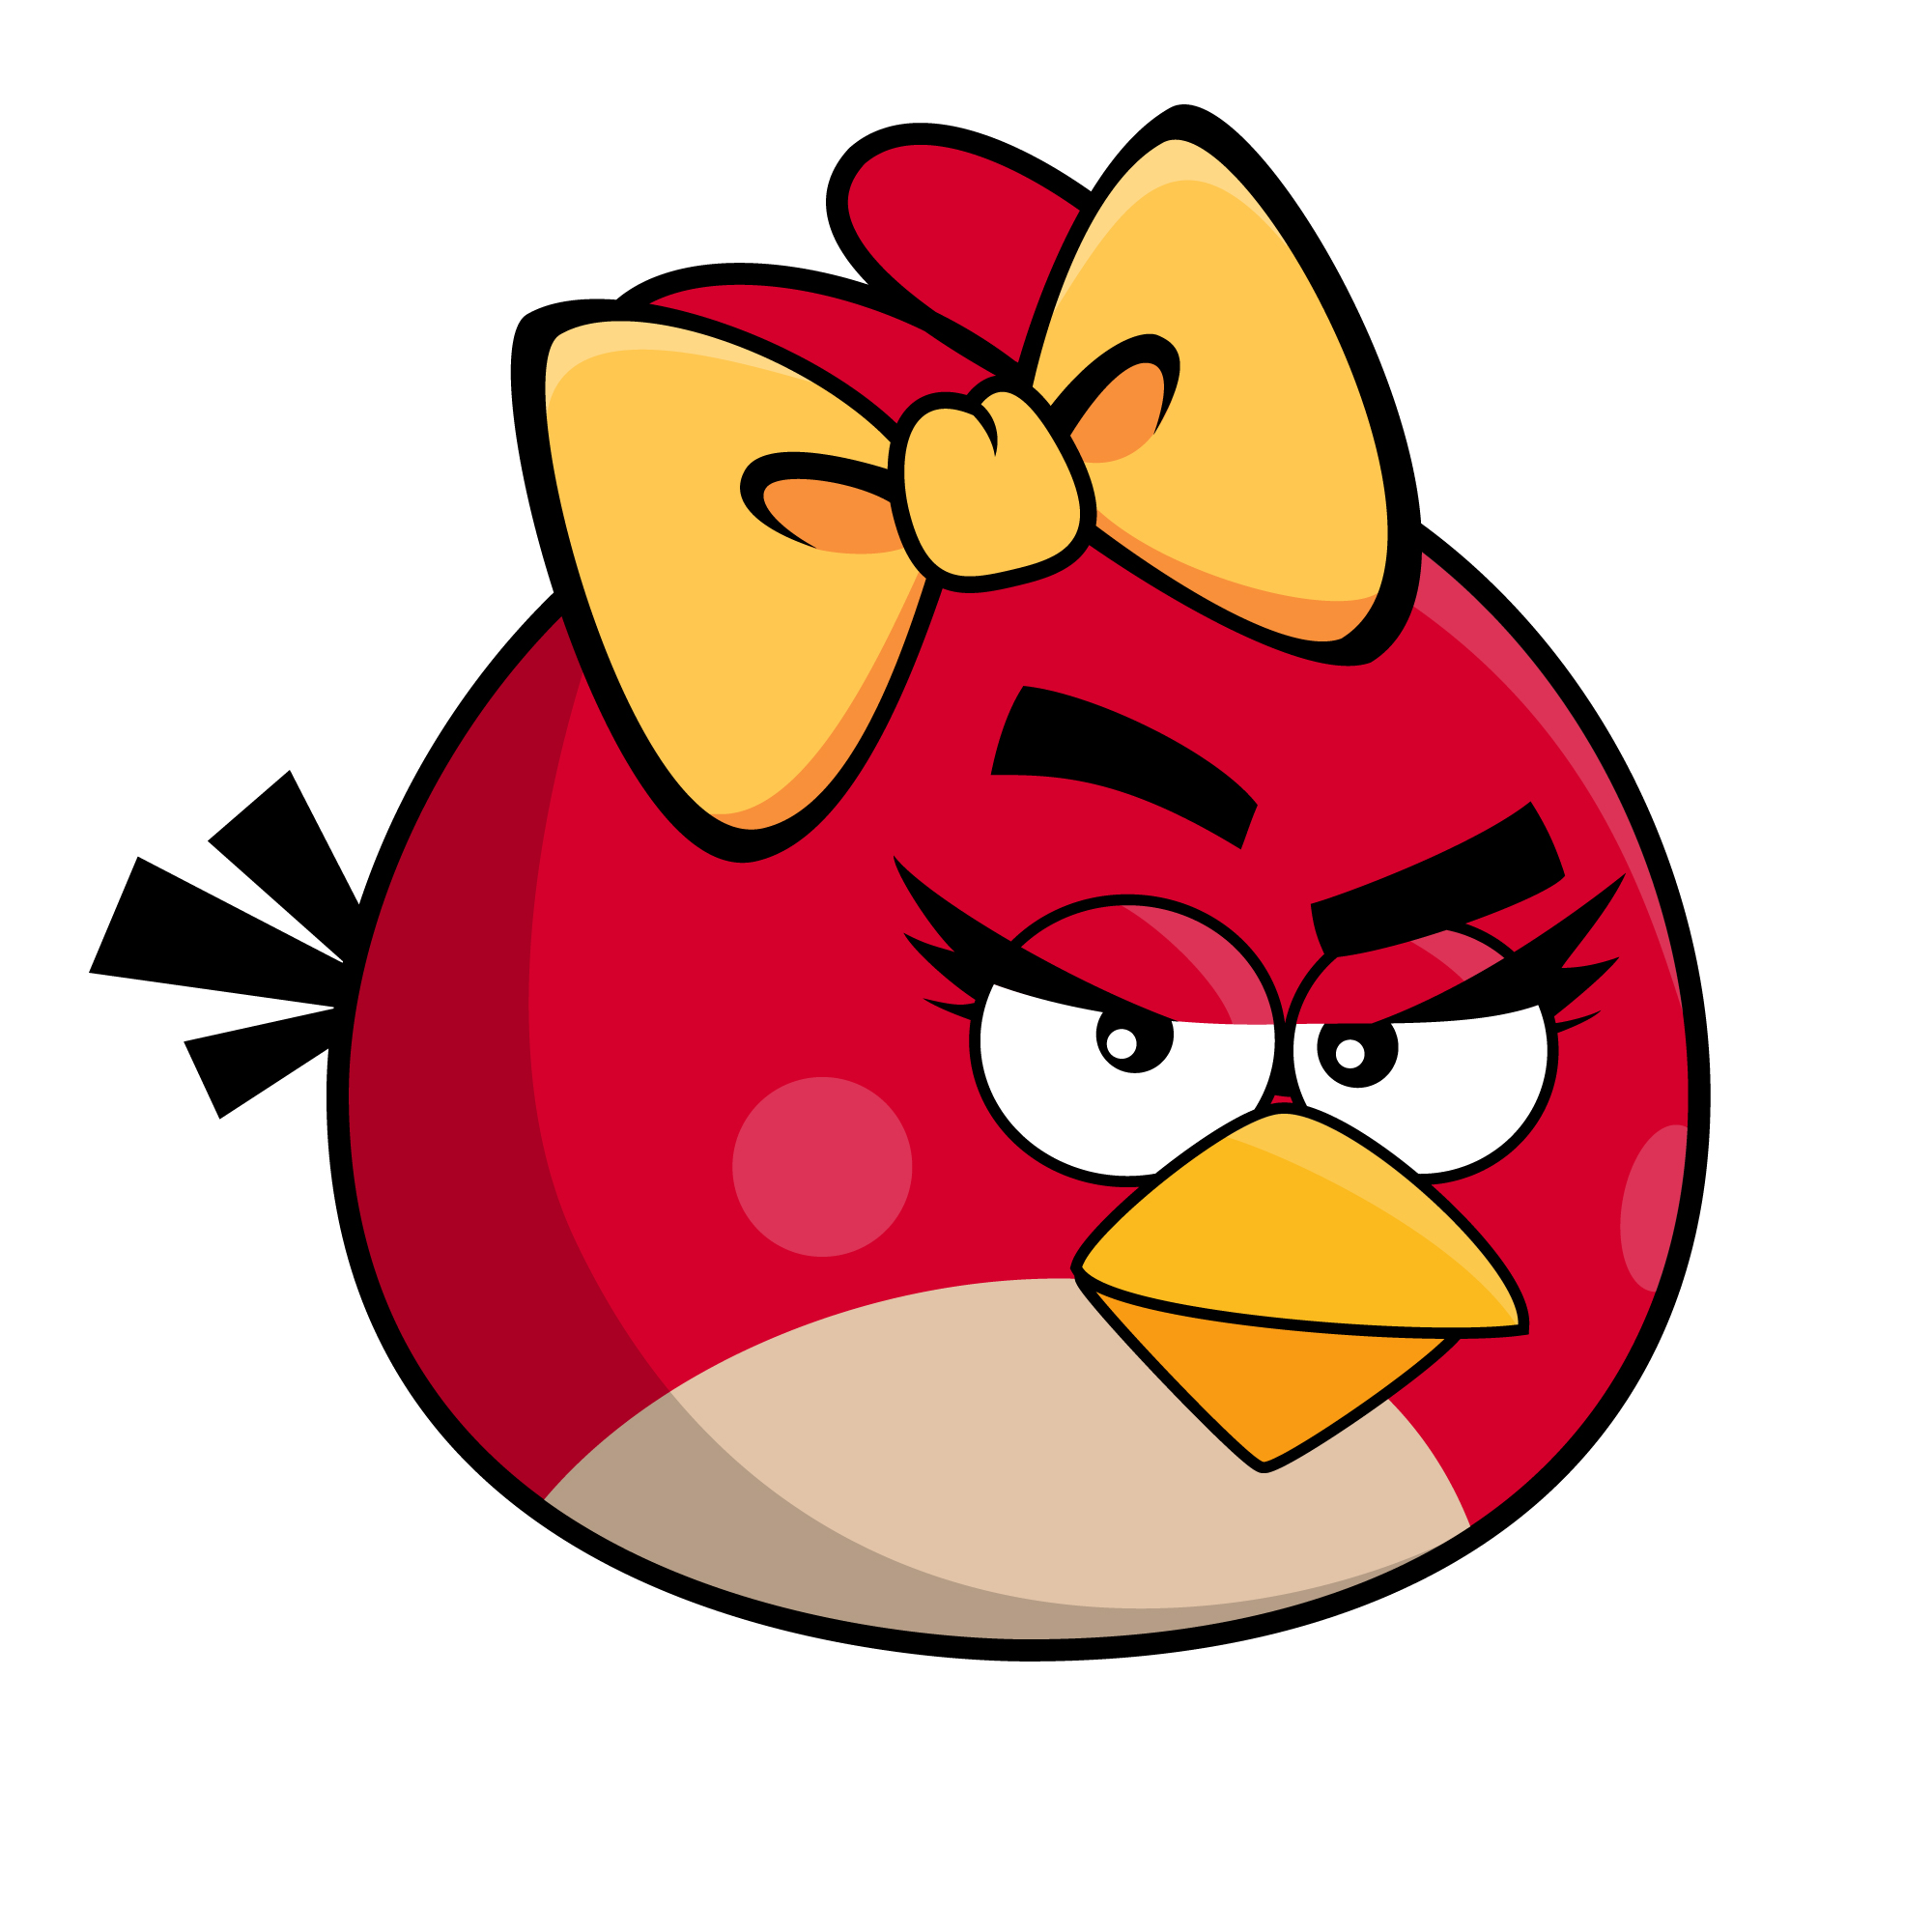 15 Best Printable Angry Birds Colouring Pages for Kids | 2000x2000